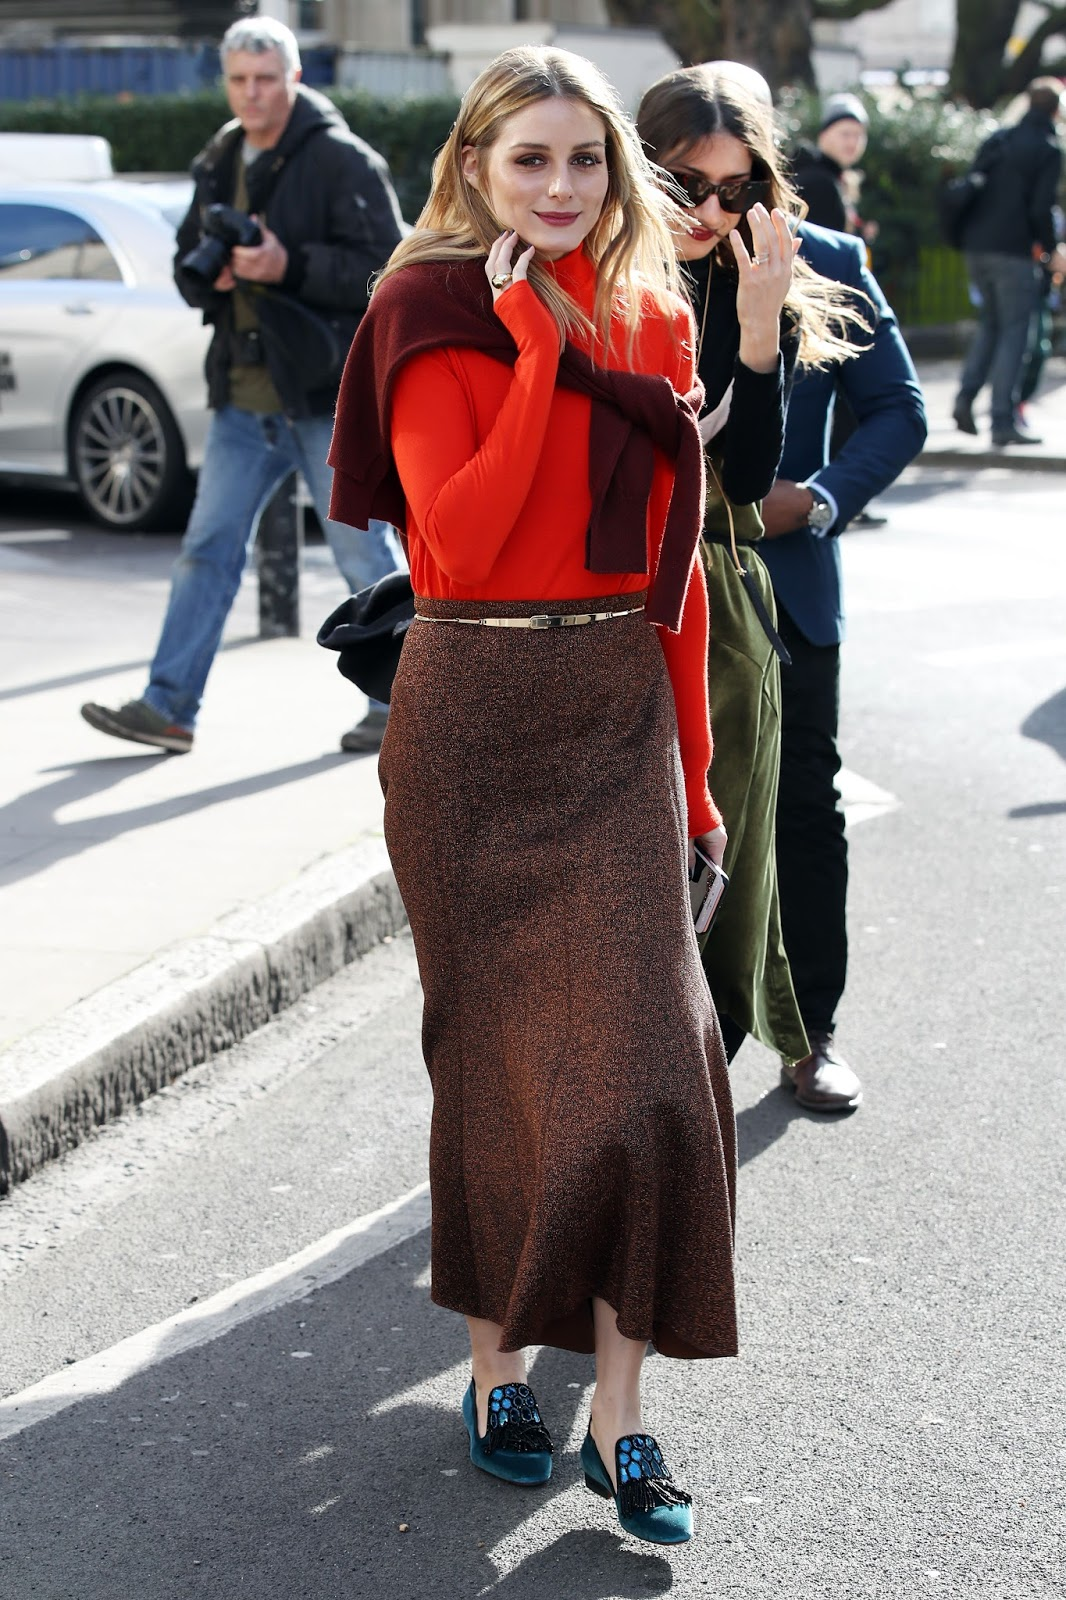 The Olivia Palermo Lookbook Olivia Palermo At London Fashion Week